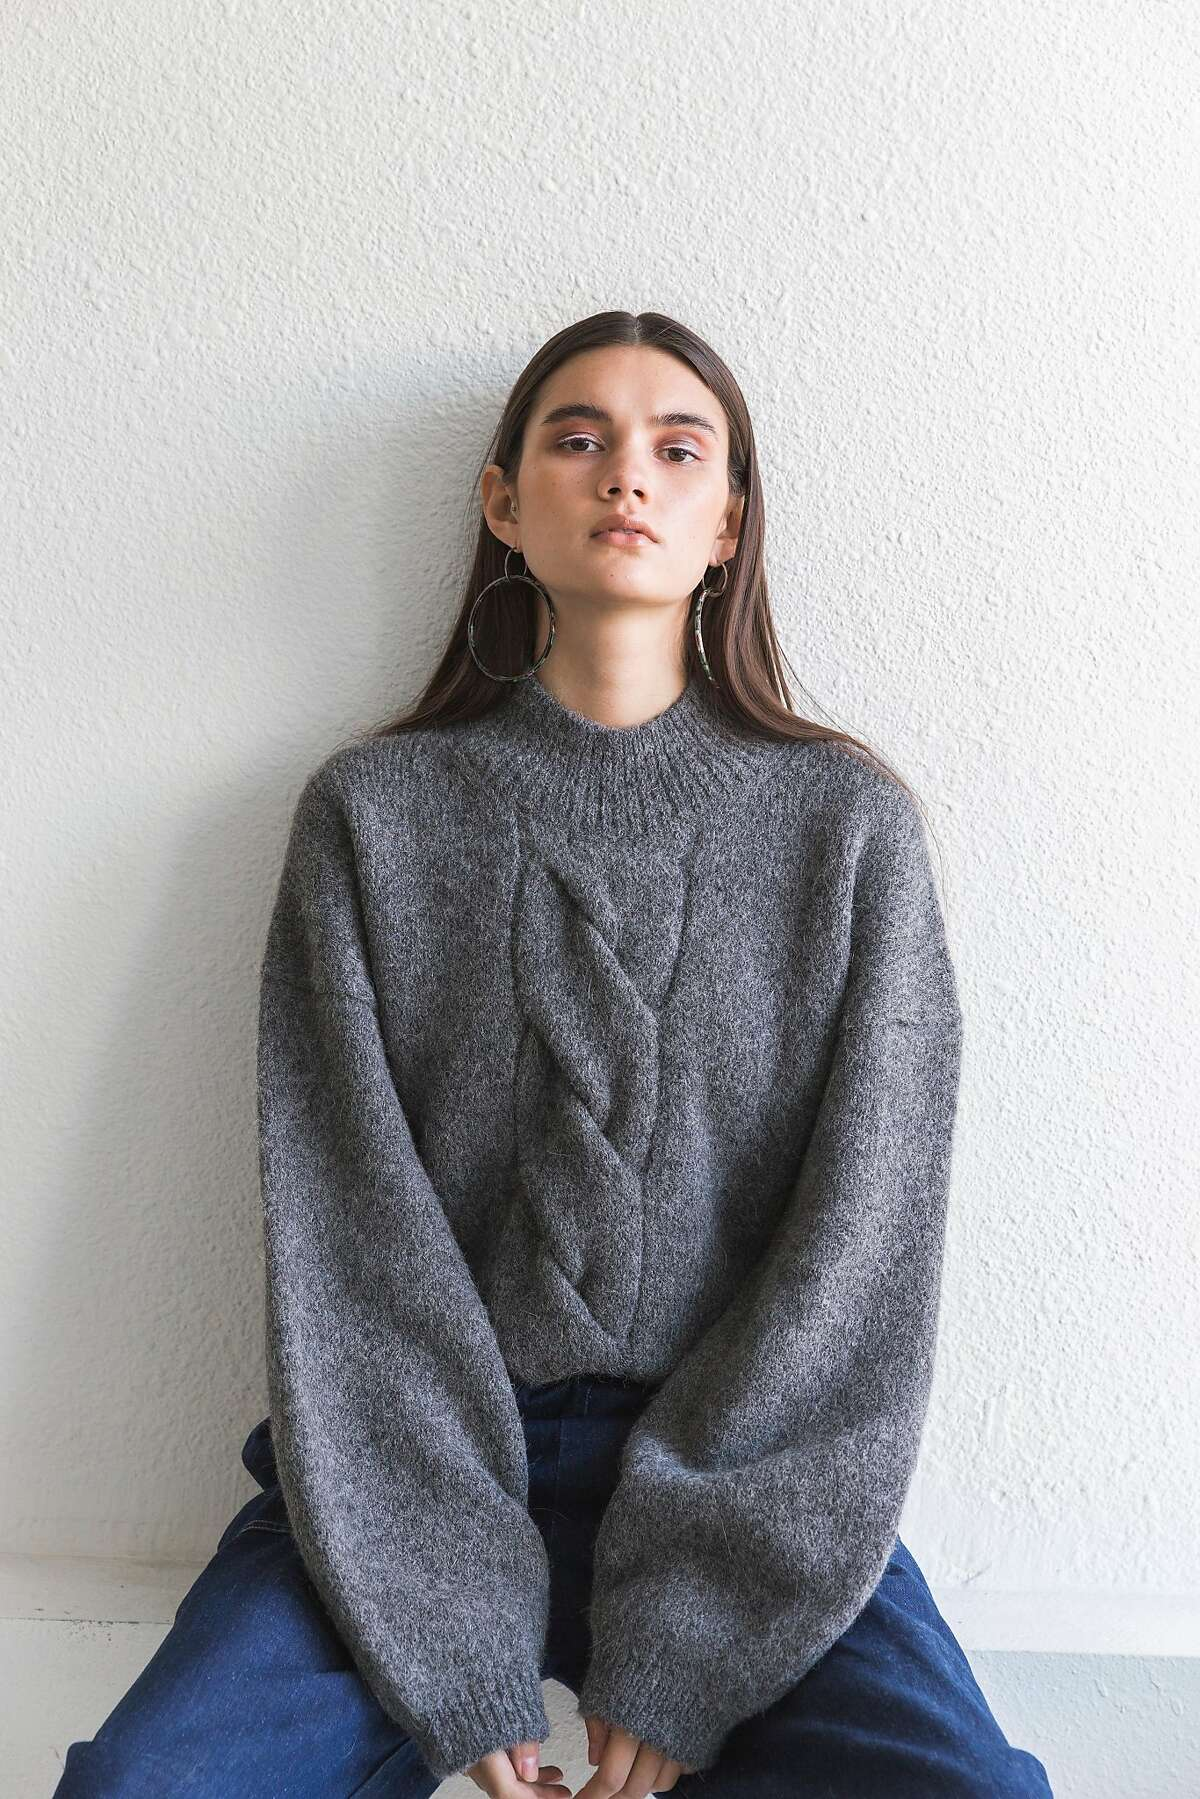 The Melange Grey Twist cable sweater ($363) as a twist on a classic big cable sweater.